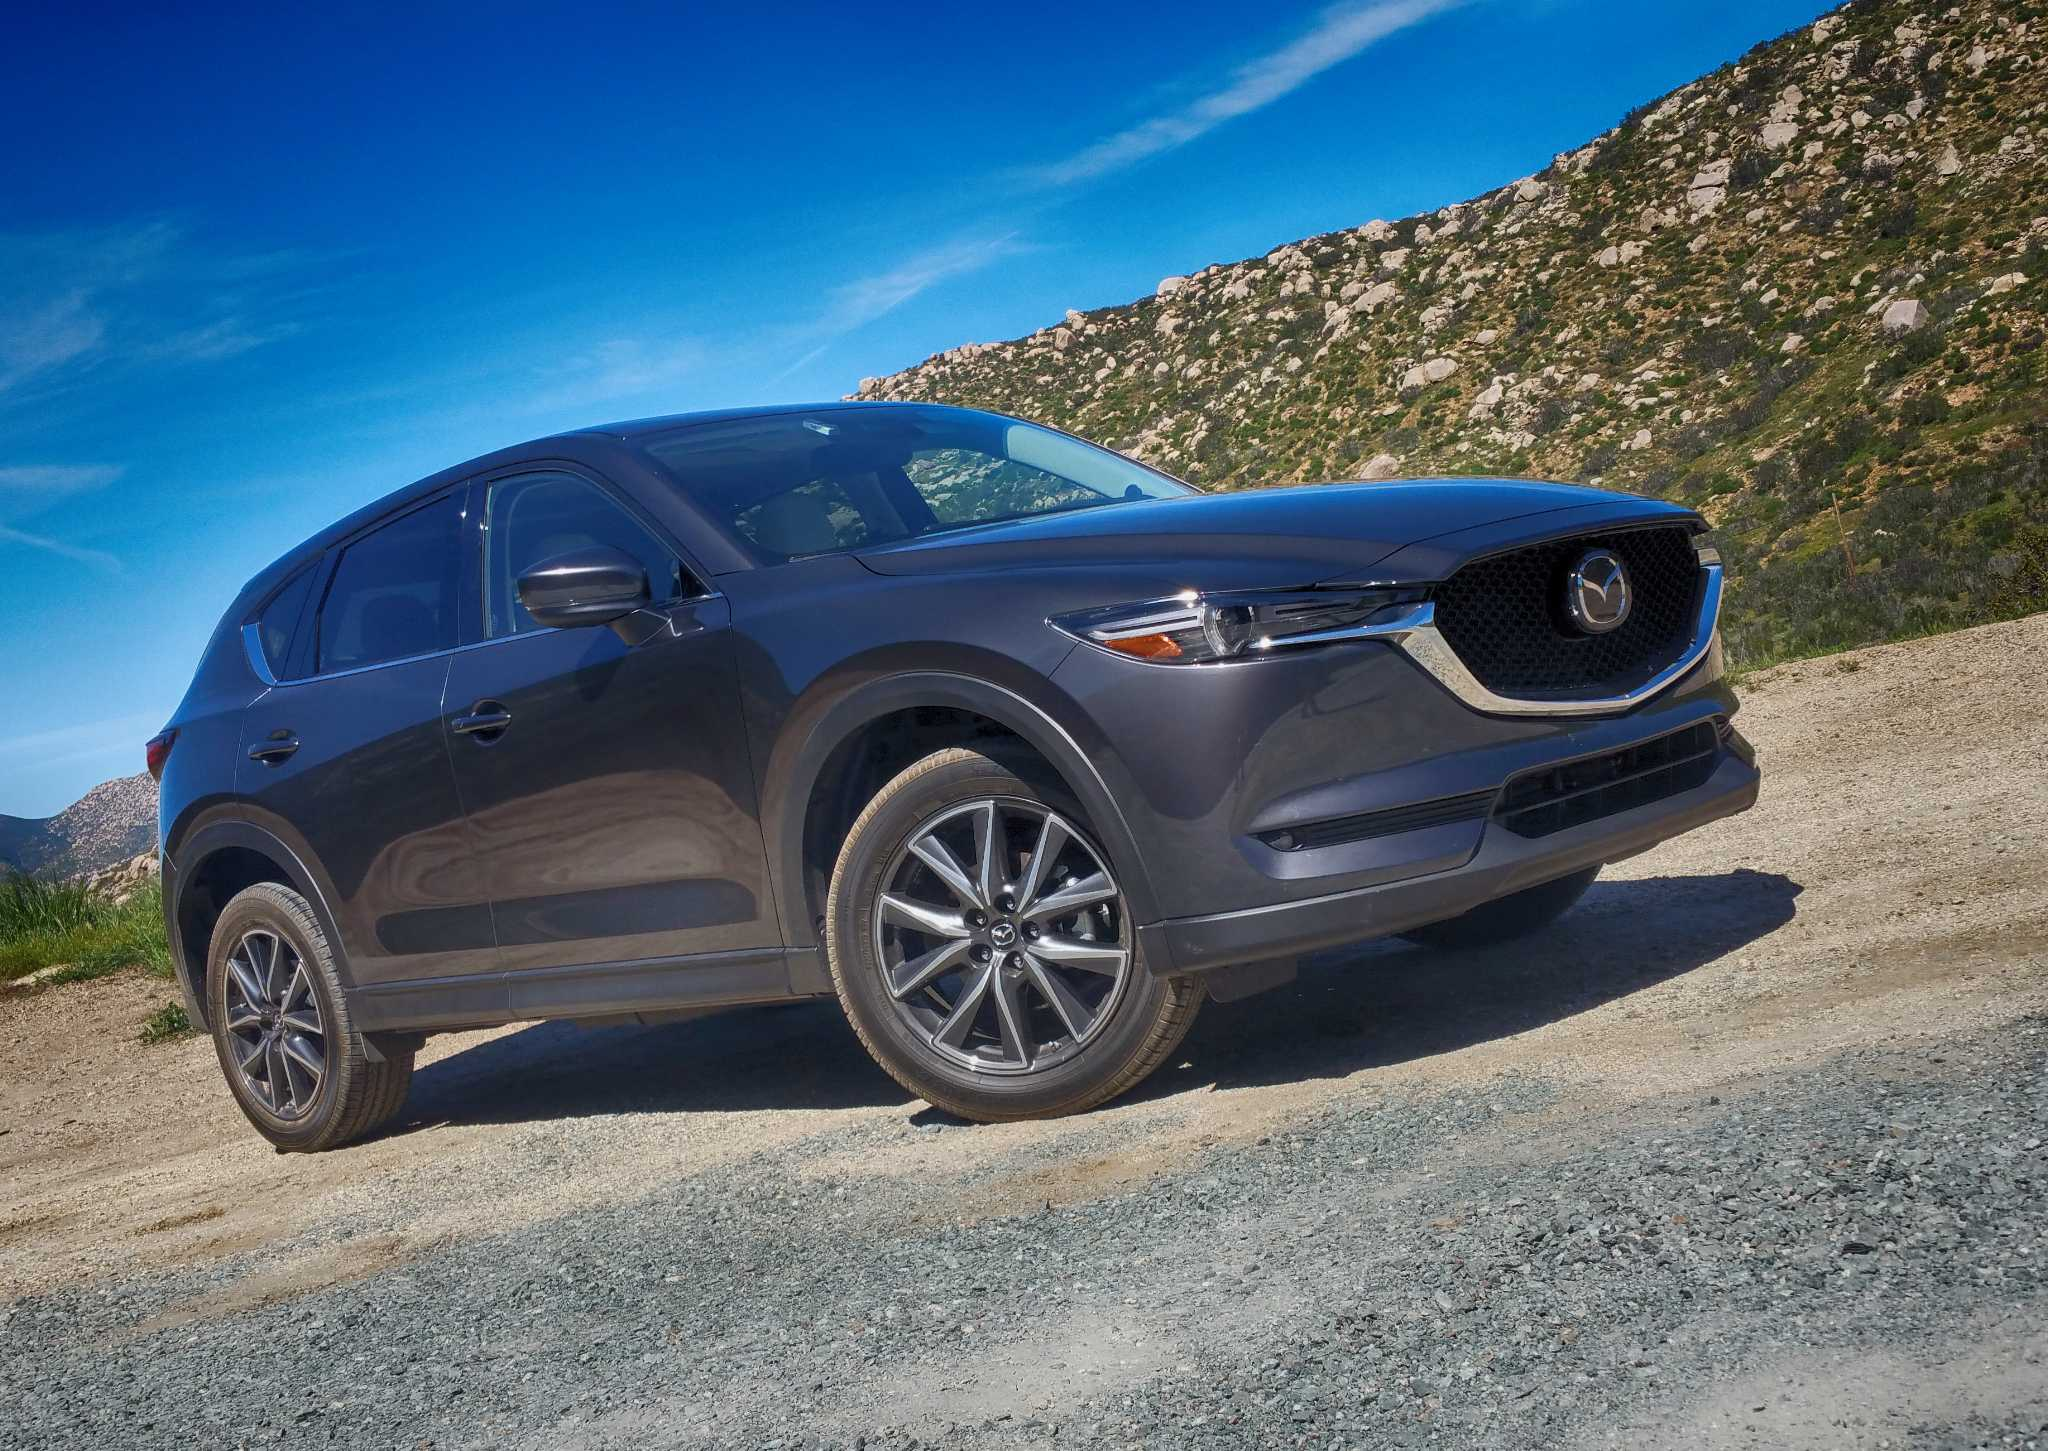 Mazda hones redesigned, more refined CX-5 crossover